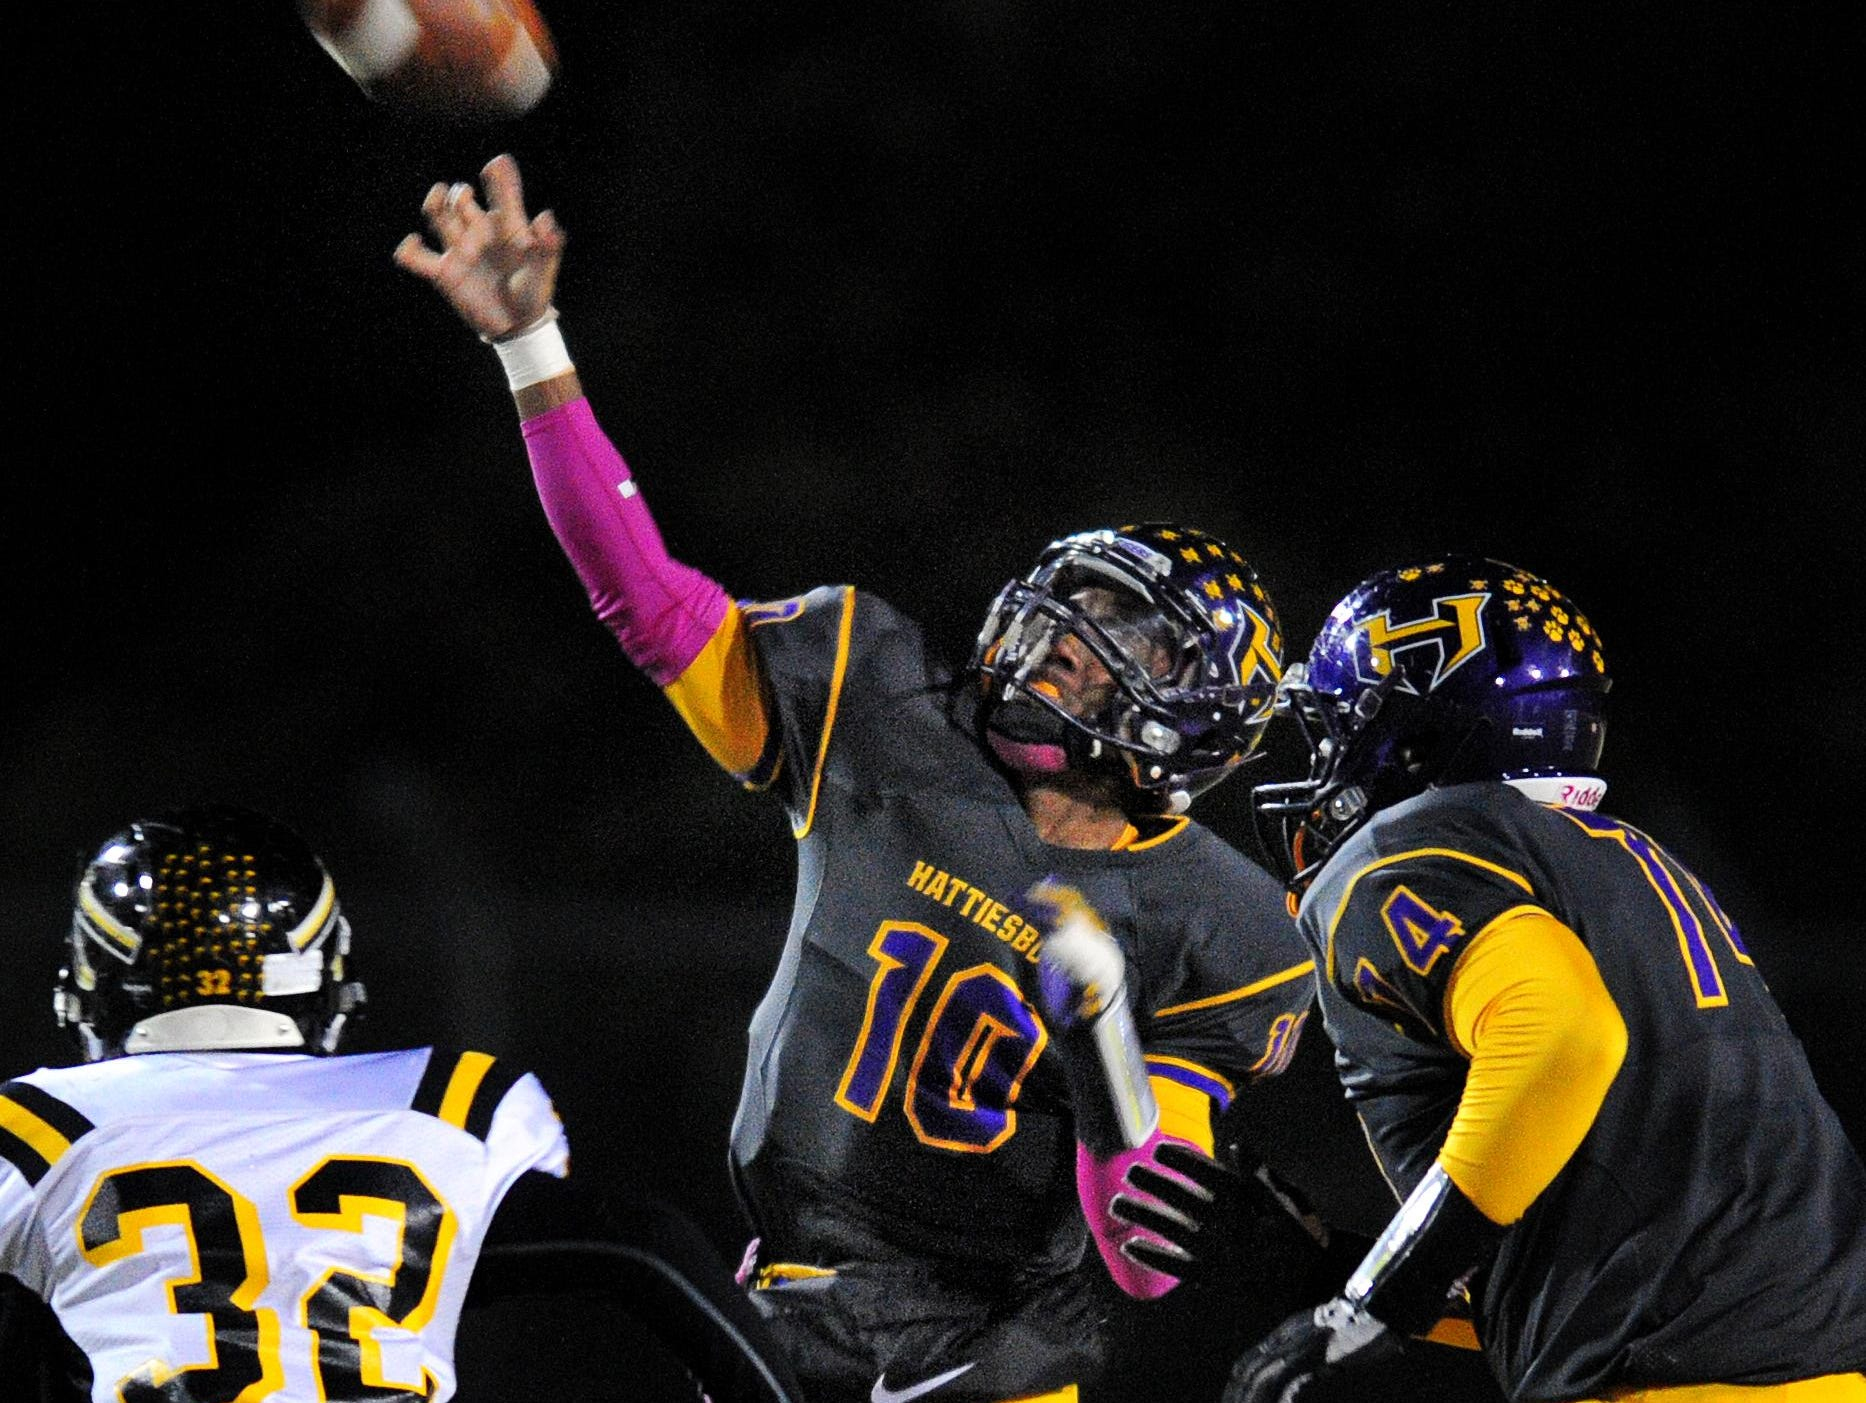 Junior quarterback Julian Conner will be a big key to Hattiesburg High's chances for success this season.